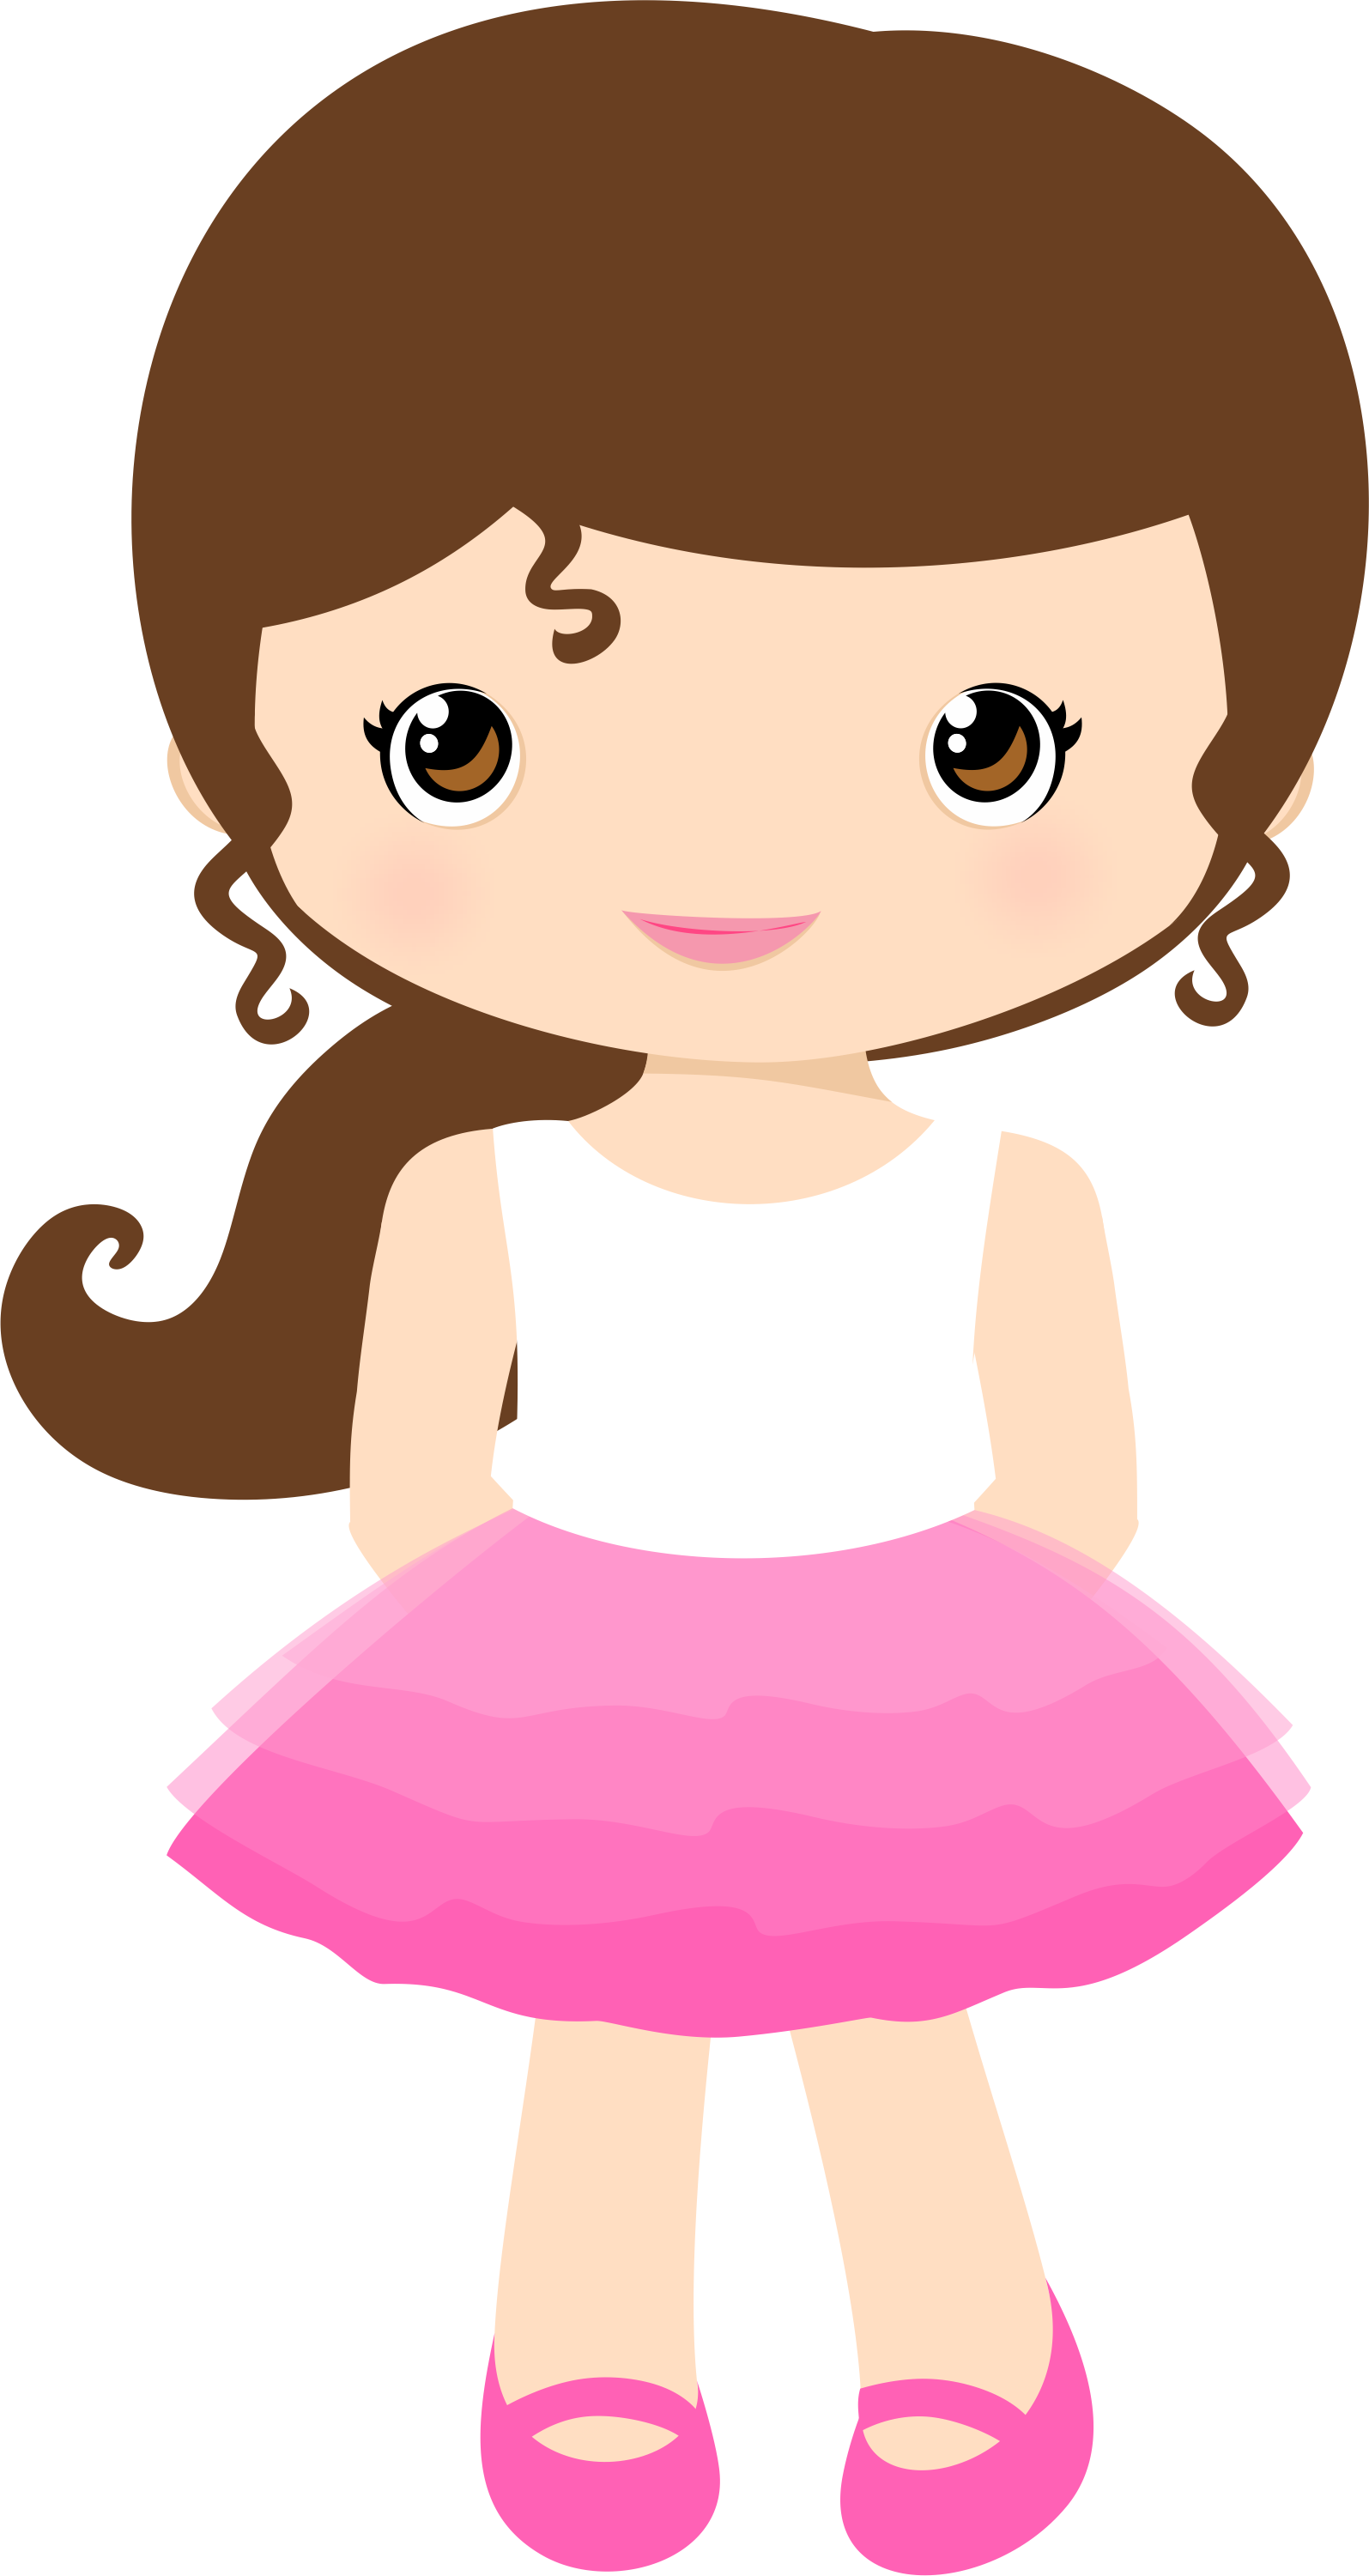 Female halloween clipart. Iswx rwpzw gy png